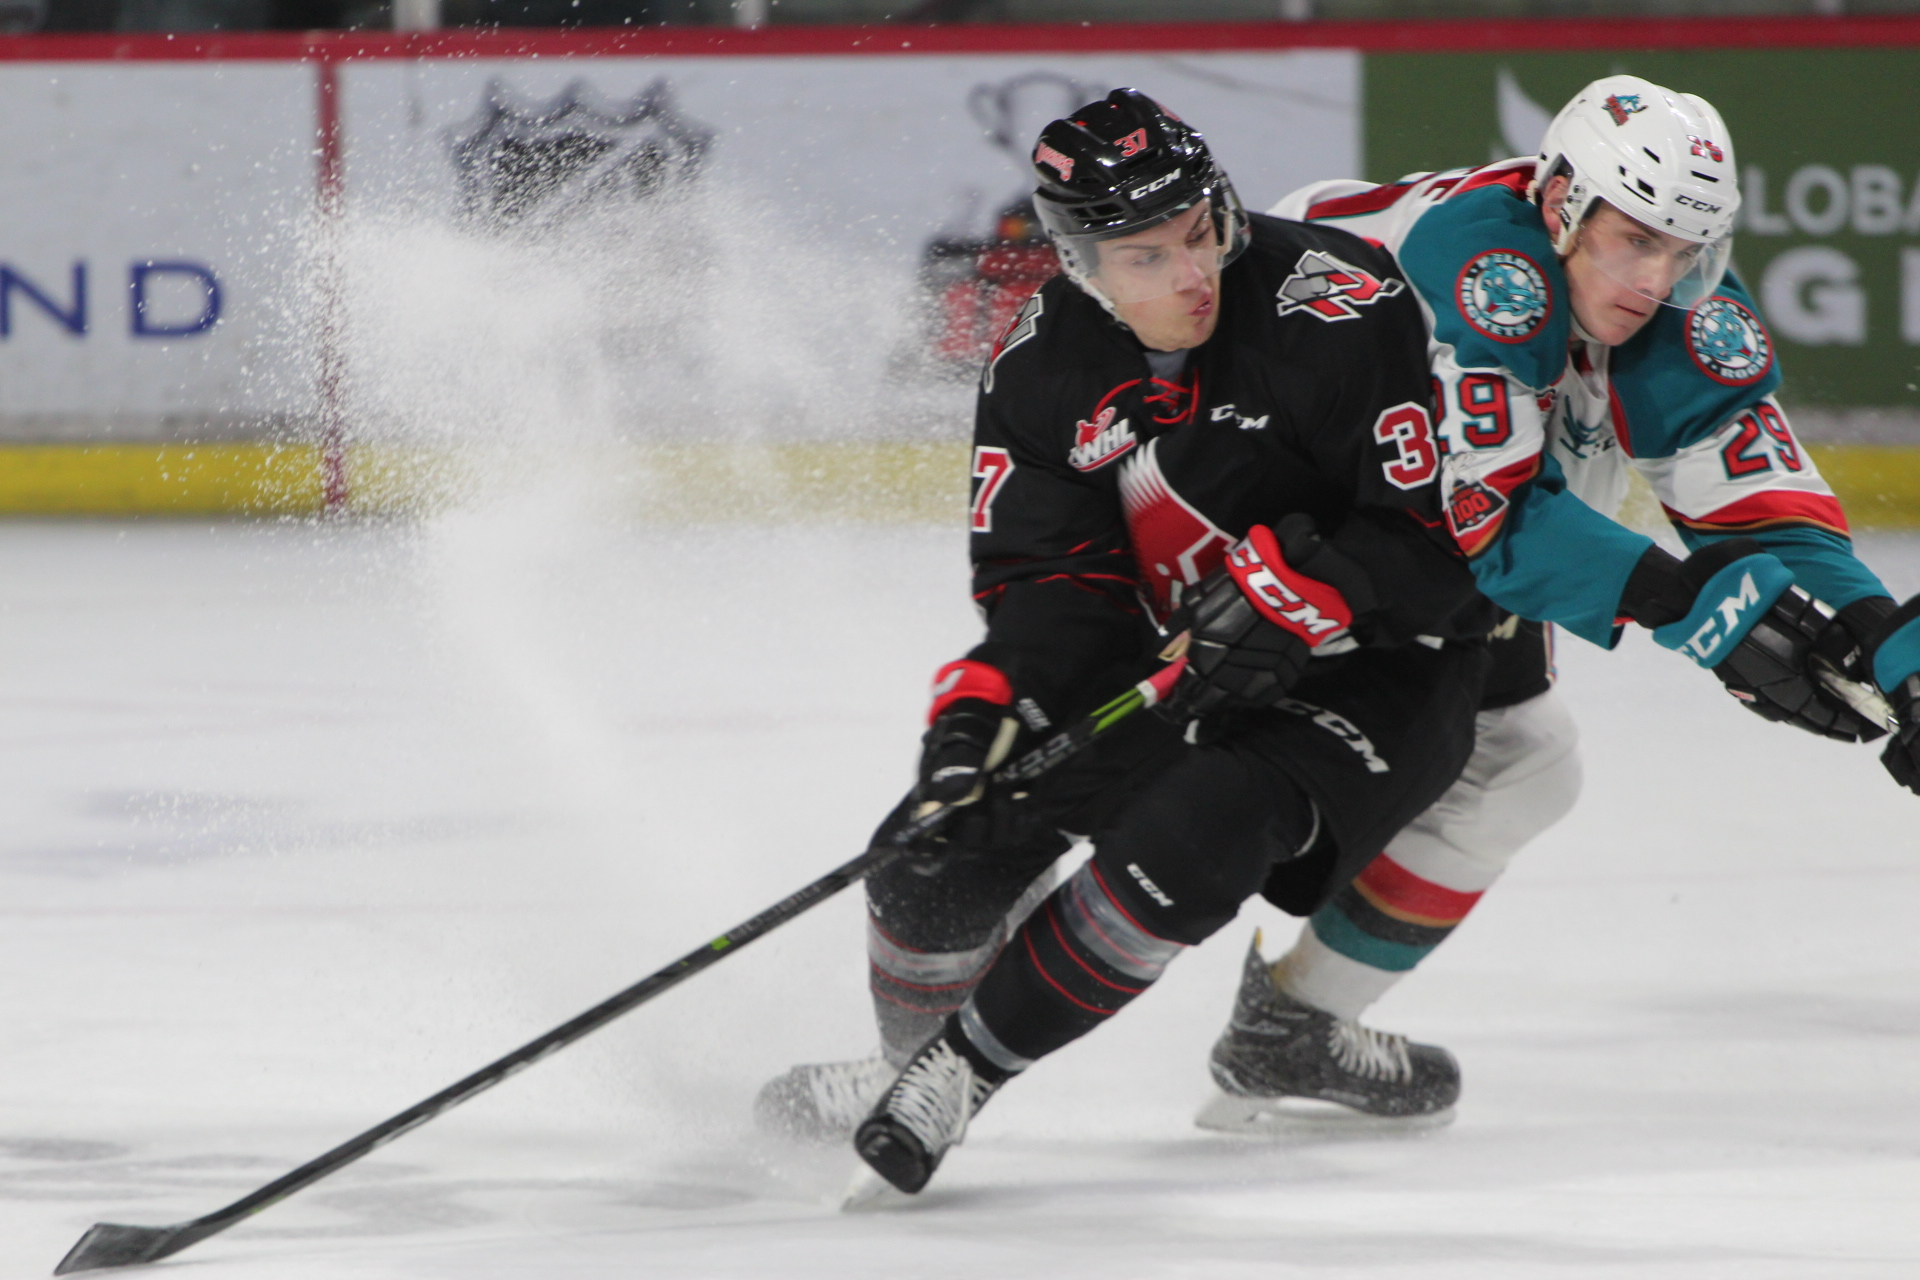 WHL: Loschiavo excited to join championship contender